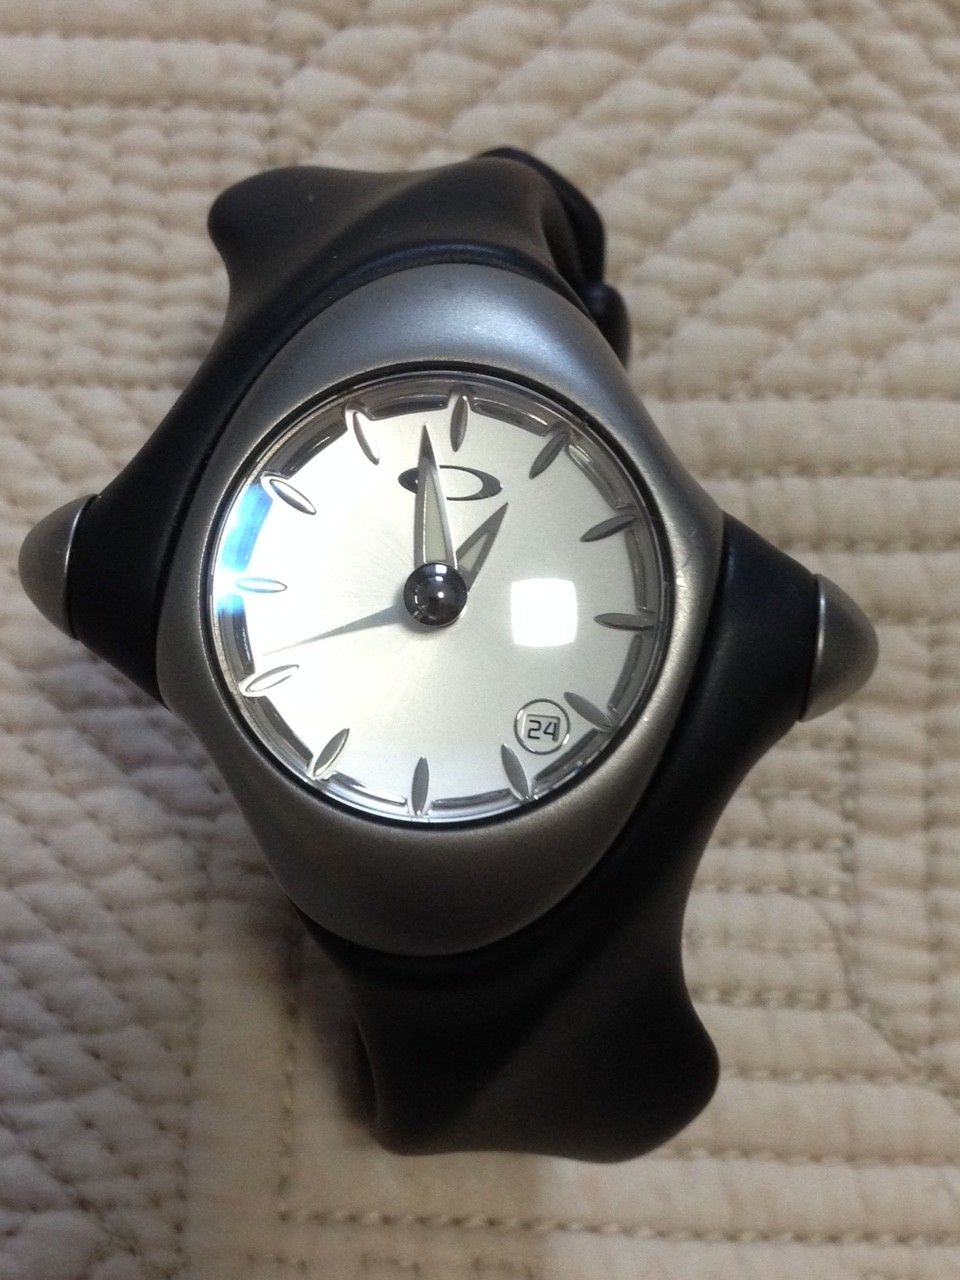 New Bullet Titanium Watch 10-110 - IMG_7792.JPG